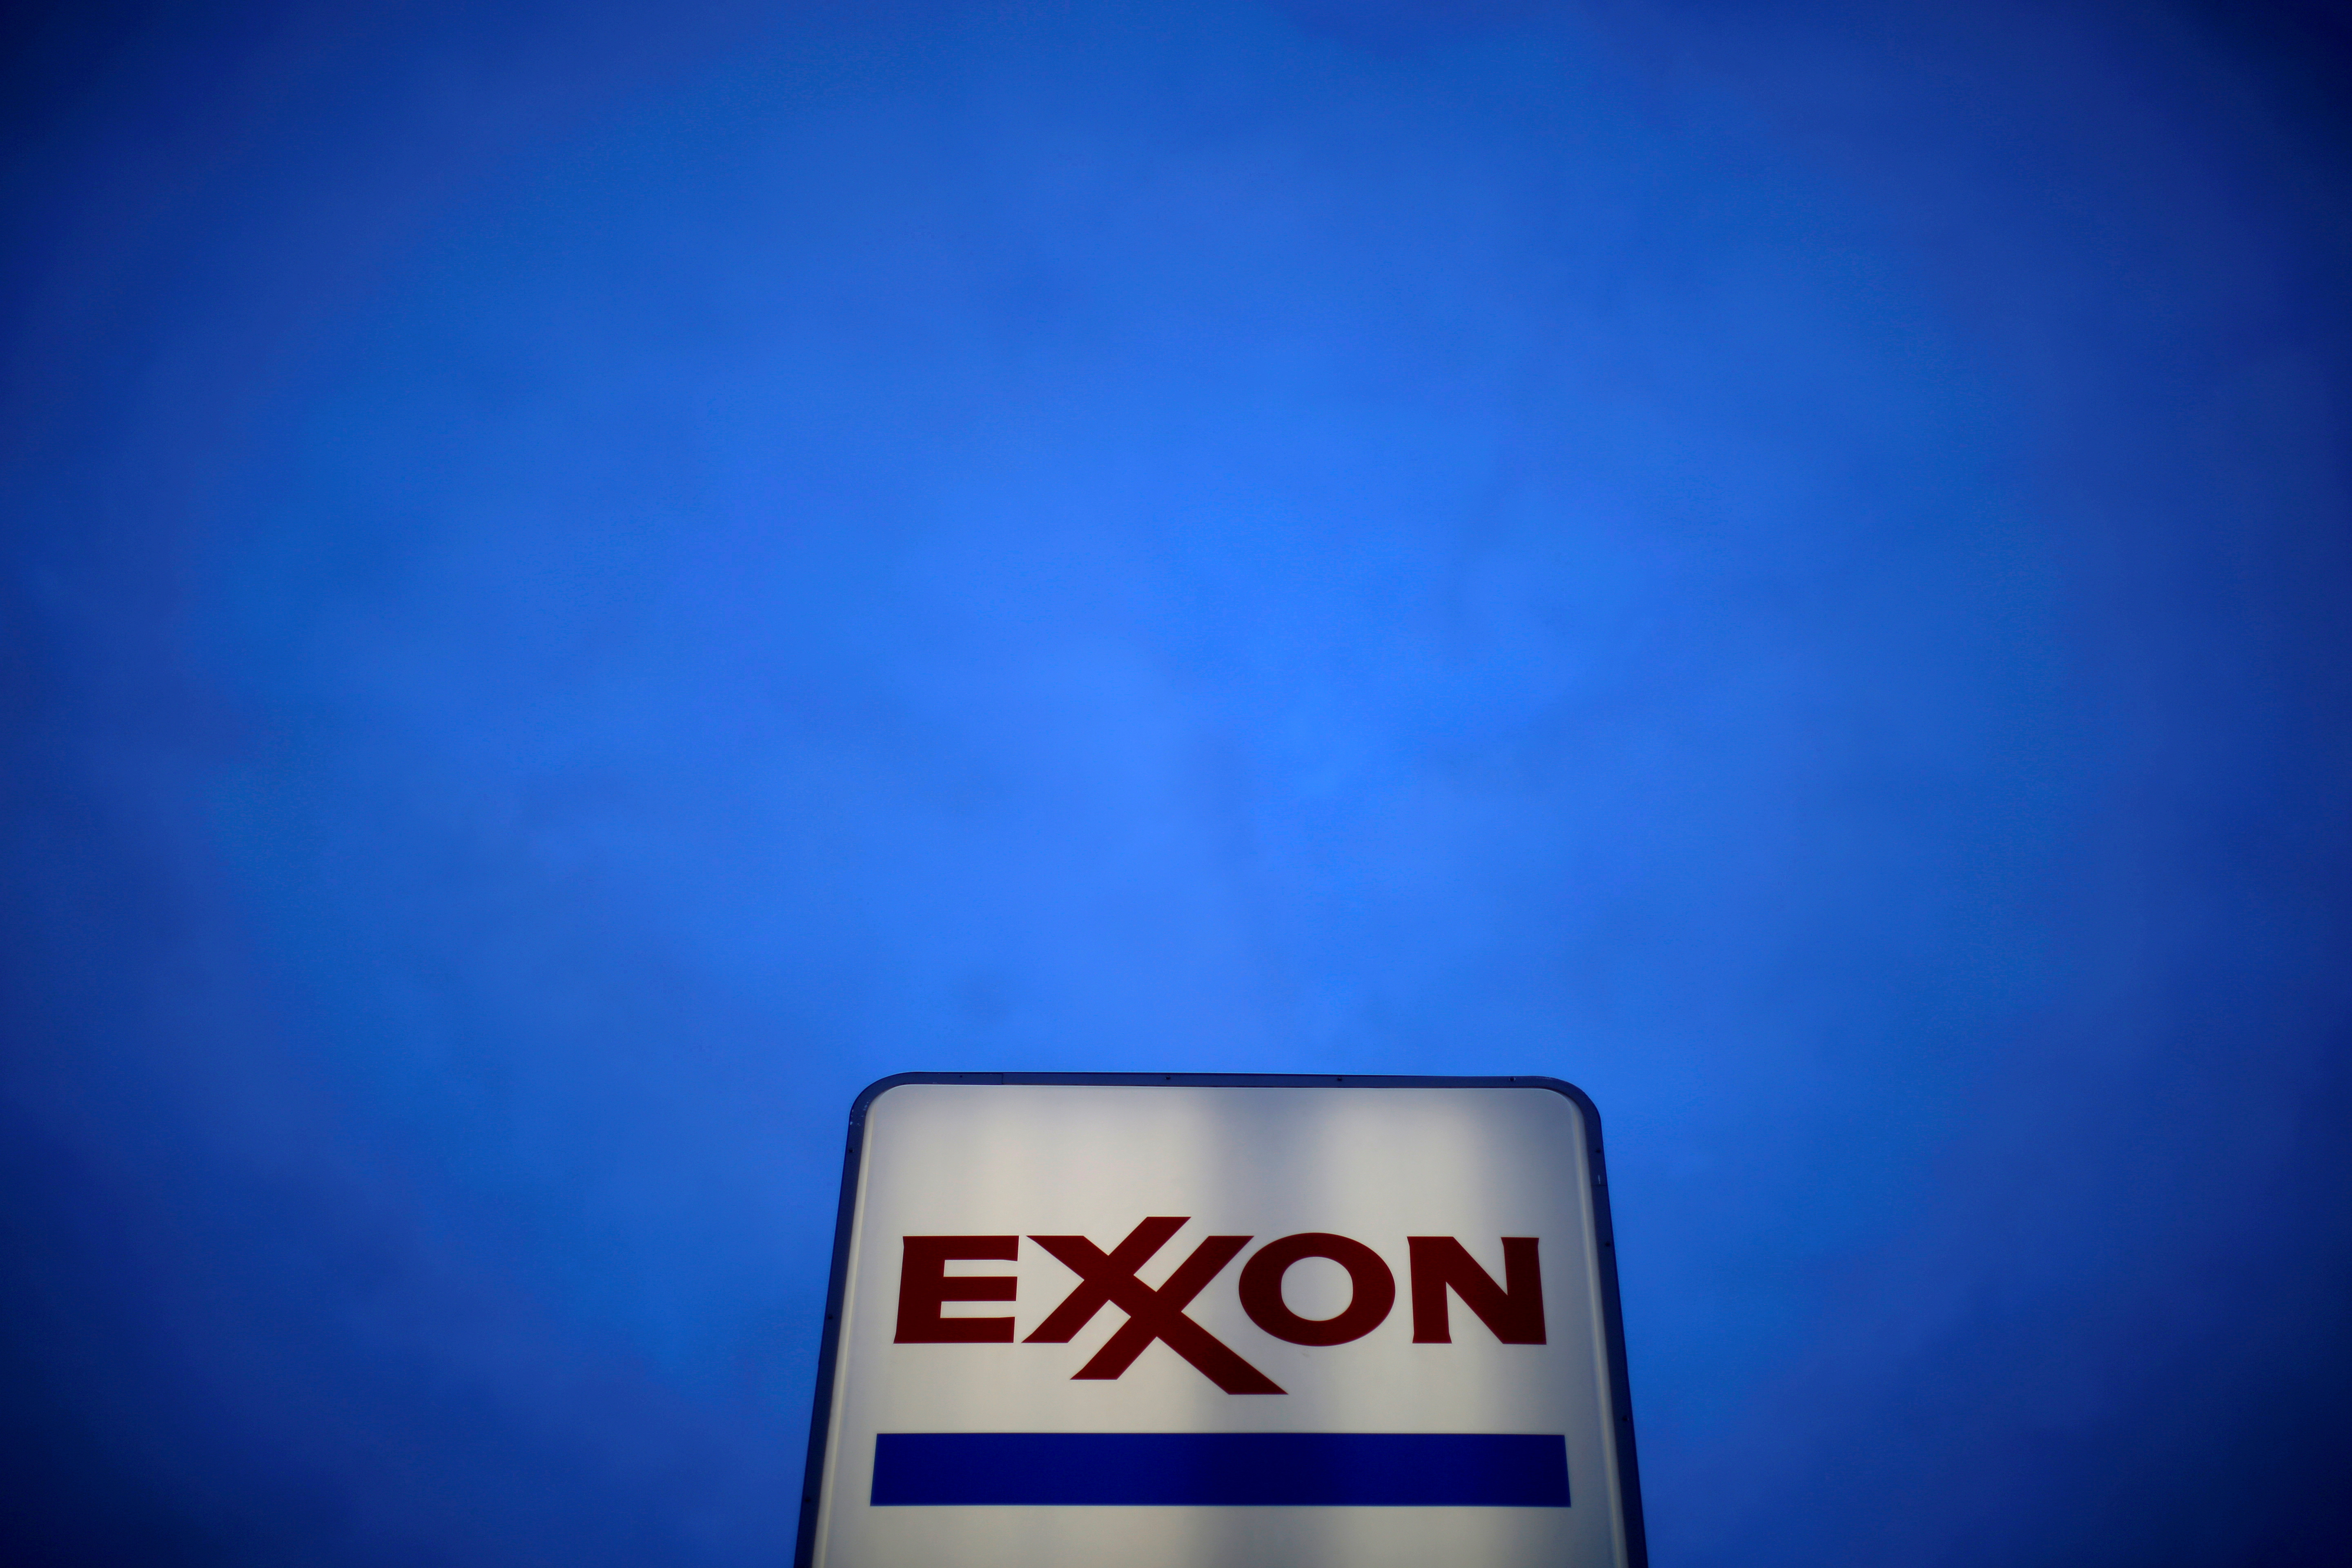 An Exxon sign is seen at a gas station in the Chicago suburb of Norridge, Illinois, U.S., October 27, 2016. REUTERS/Jim Young/File Photo